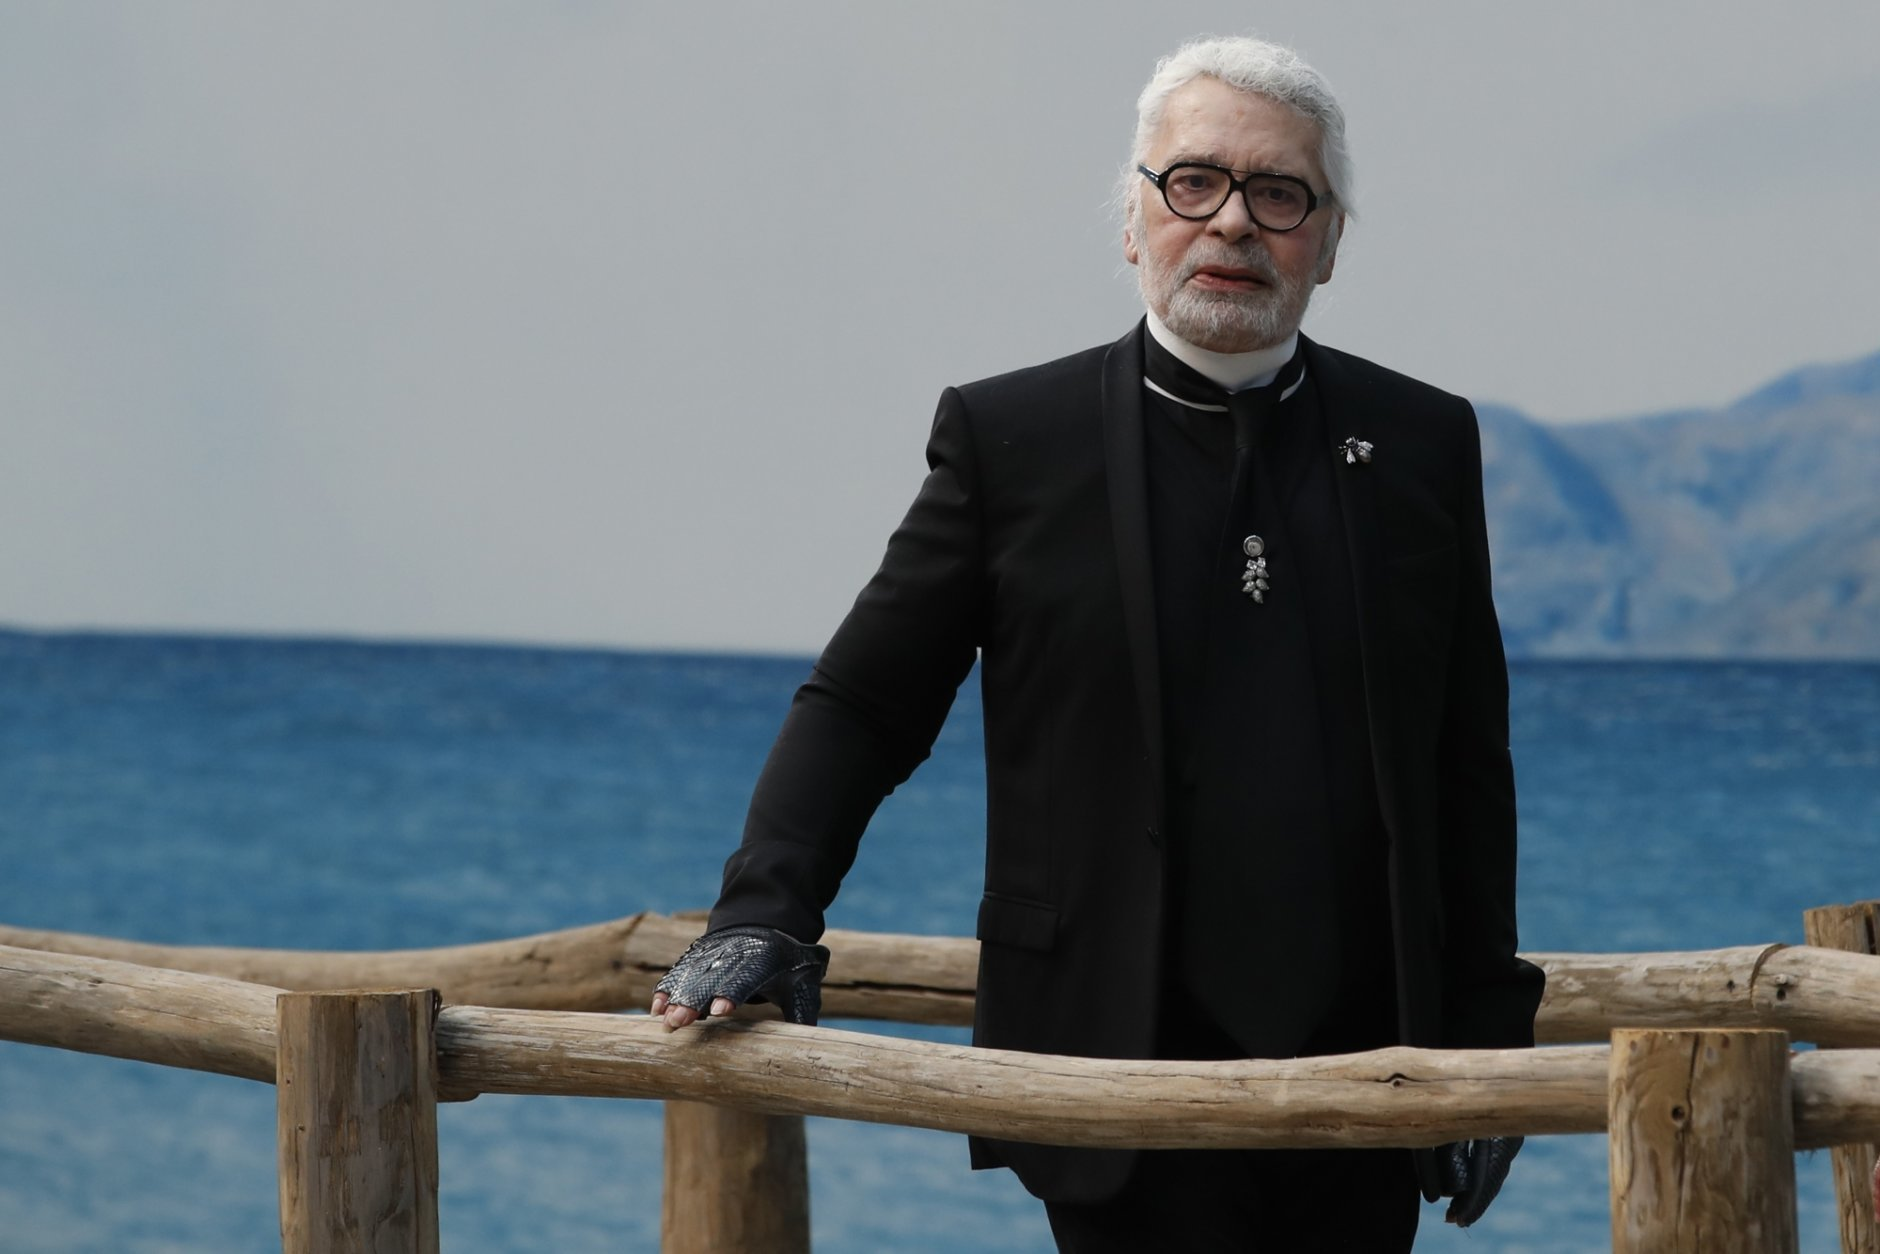 FILE  - In this Tuesday, Oct.2, 2018 file photo, fashion designer Karl Lagerfeld poses after the presentation of Chanel Spring/Summer 2019 ready-to-wear fashion collection in Paris, Tuesday, Oct.2, 2018. Chanel's iconic couturier, Karl Lagerfeld, whose accomplished designs as well as trademark white ponytail, high starched collars and dark enigmatic glasses dominated high fashion for the last 50 years, has died. He was around 85 years old. (AP Photo/Christophe Ena)